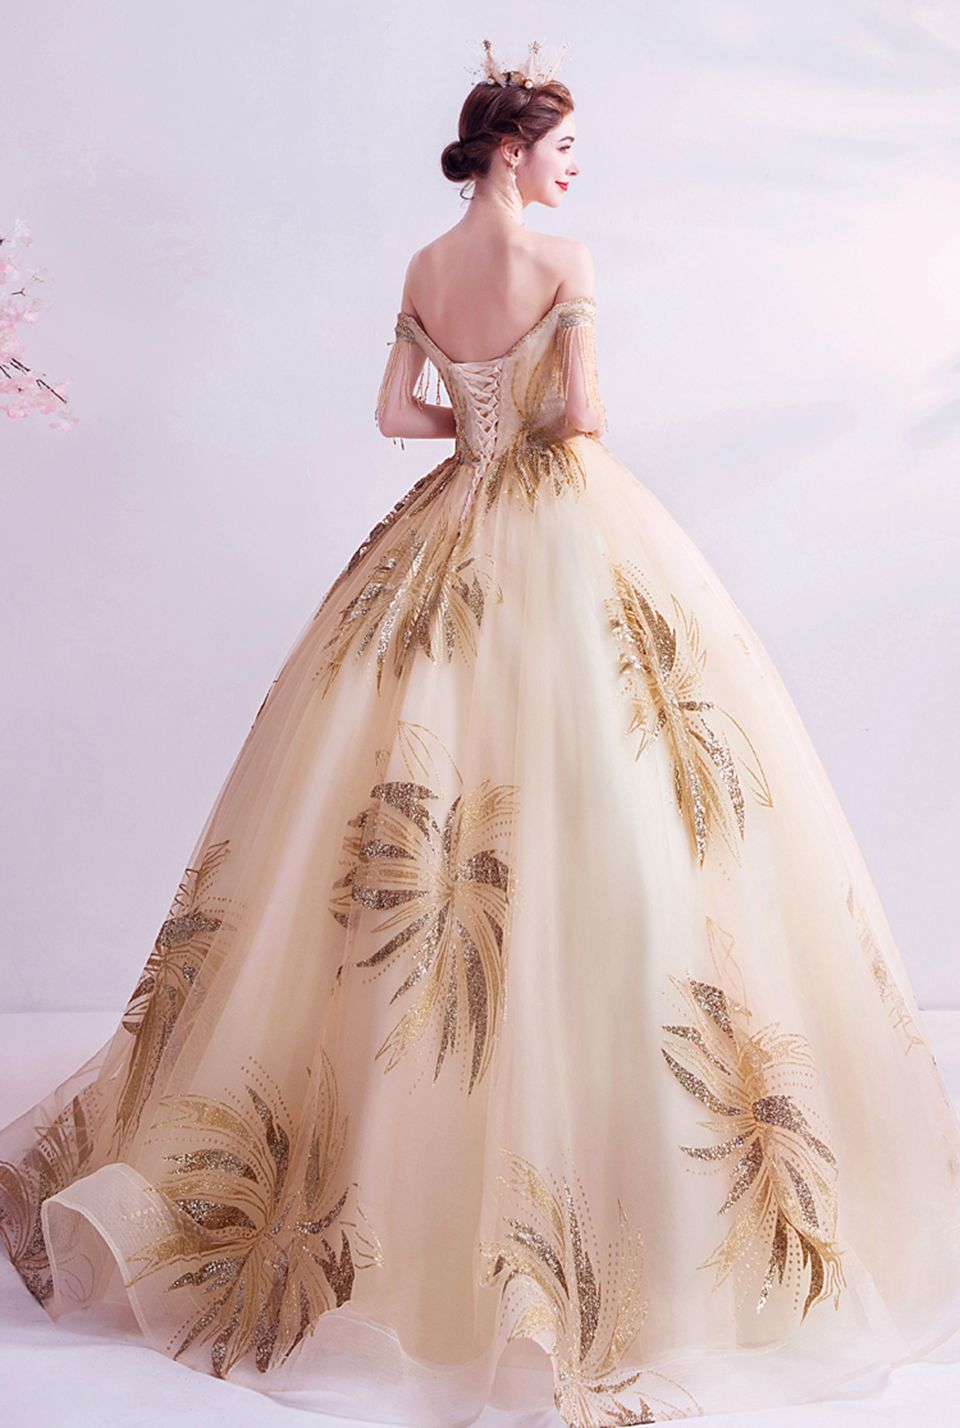 Gold Ball Gown Quinceanera Dresses 2020 Elegant Party Night Prom Gowns Women Off Shoulder Boat Neck Formal Long Robe De Soiree